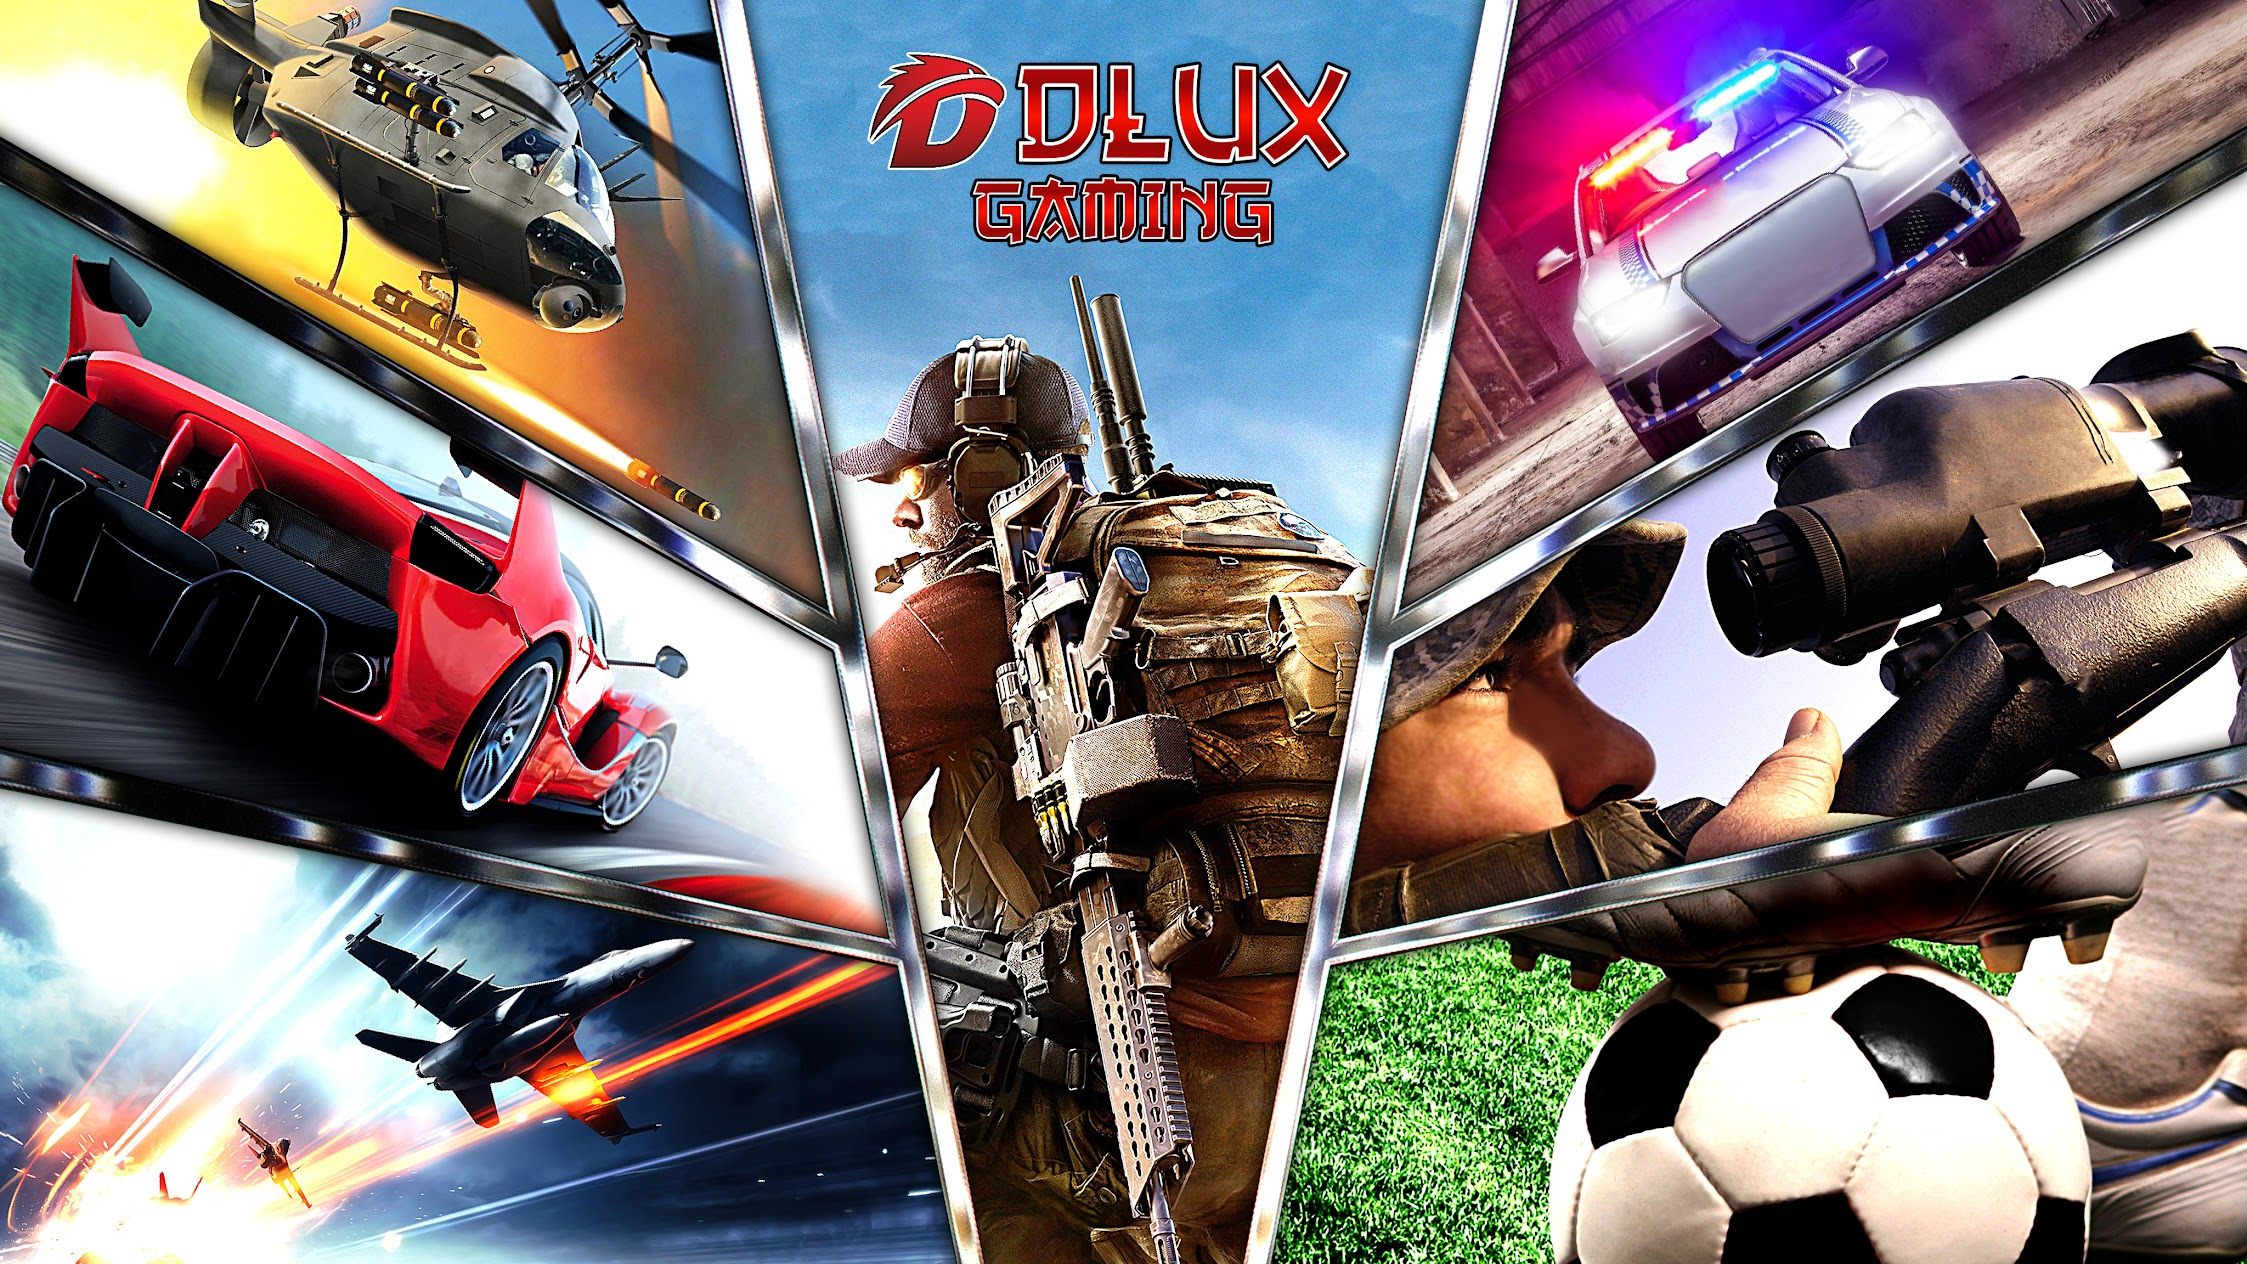 Dlux Gaming